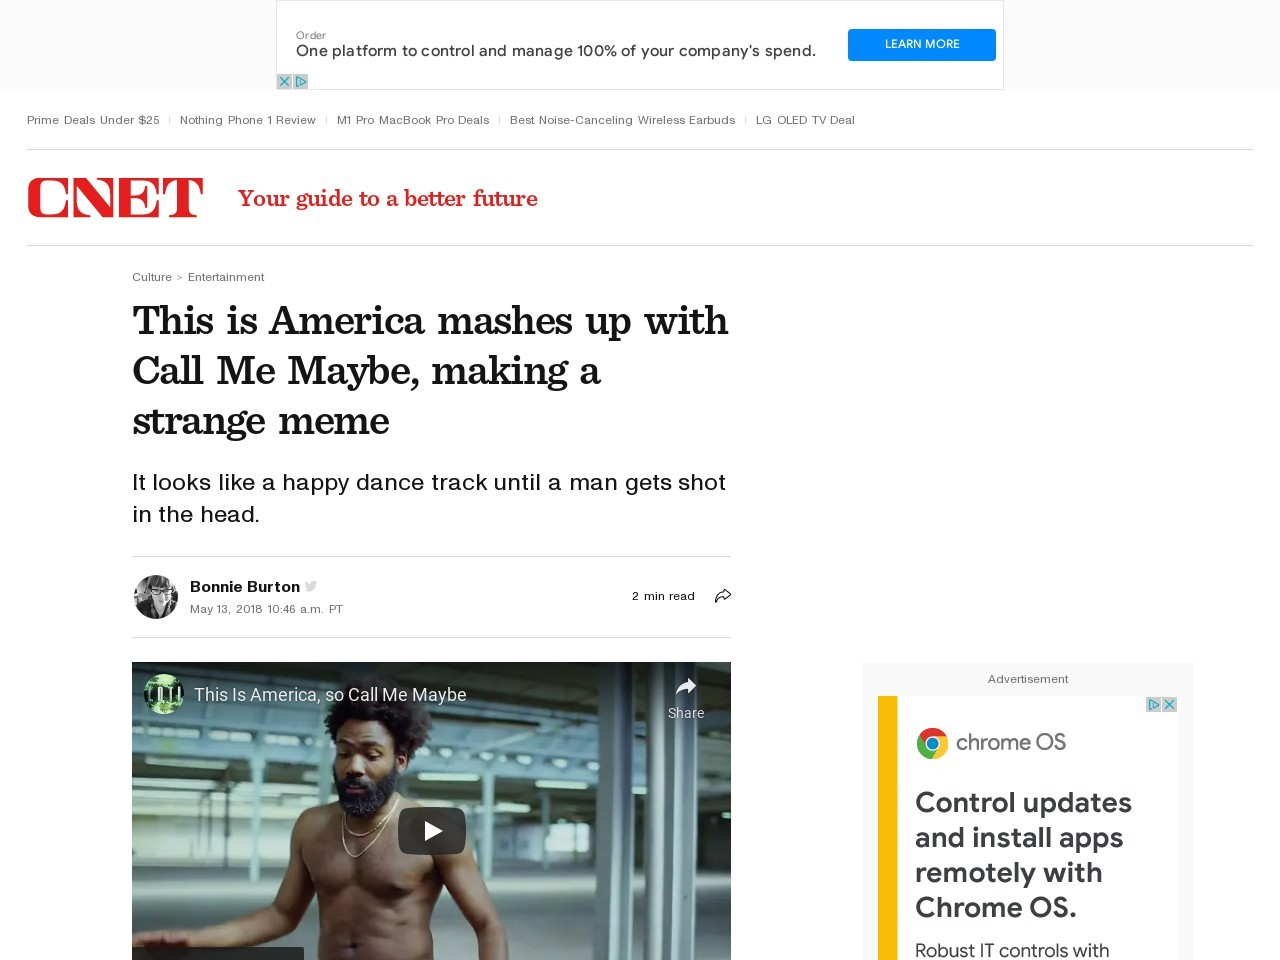 This is America mashes up with Call Me Maybe, making a strange meme     – CNET